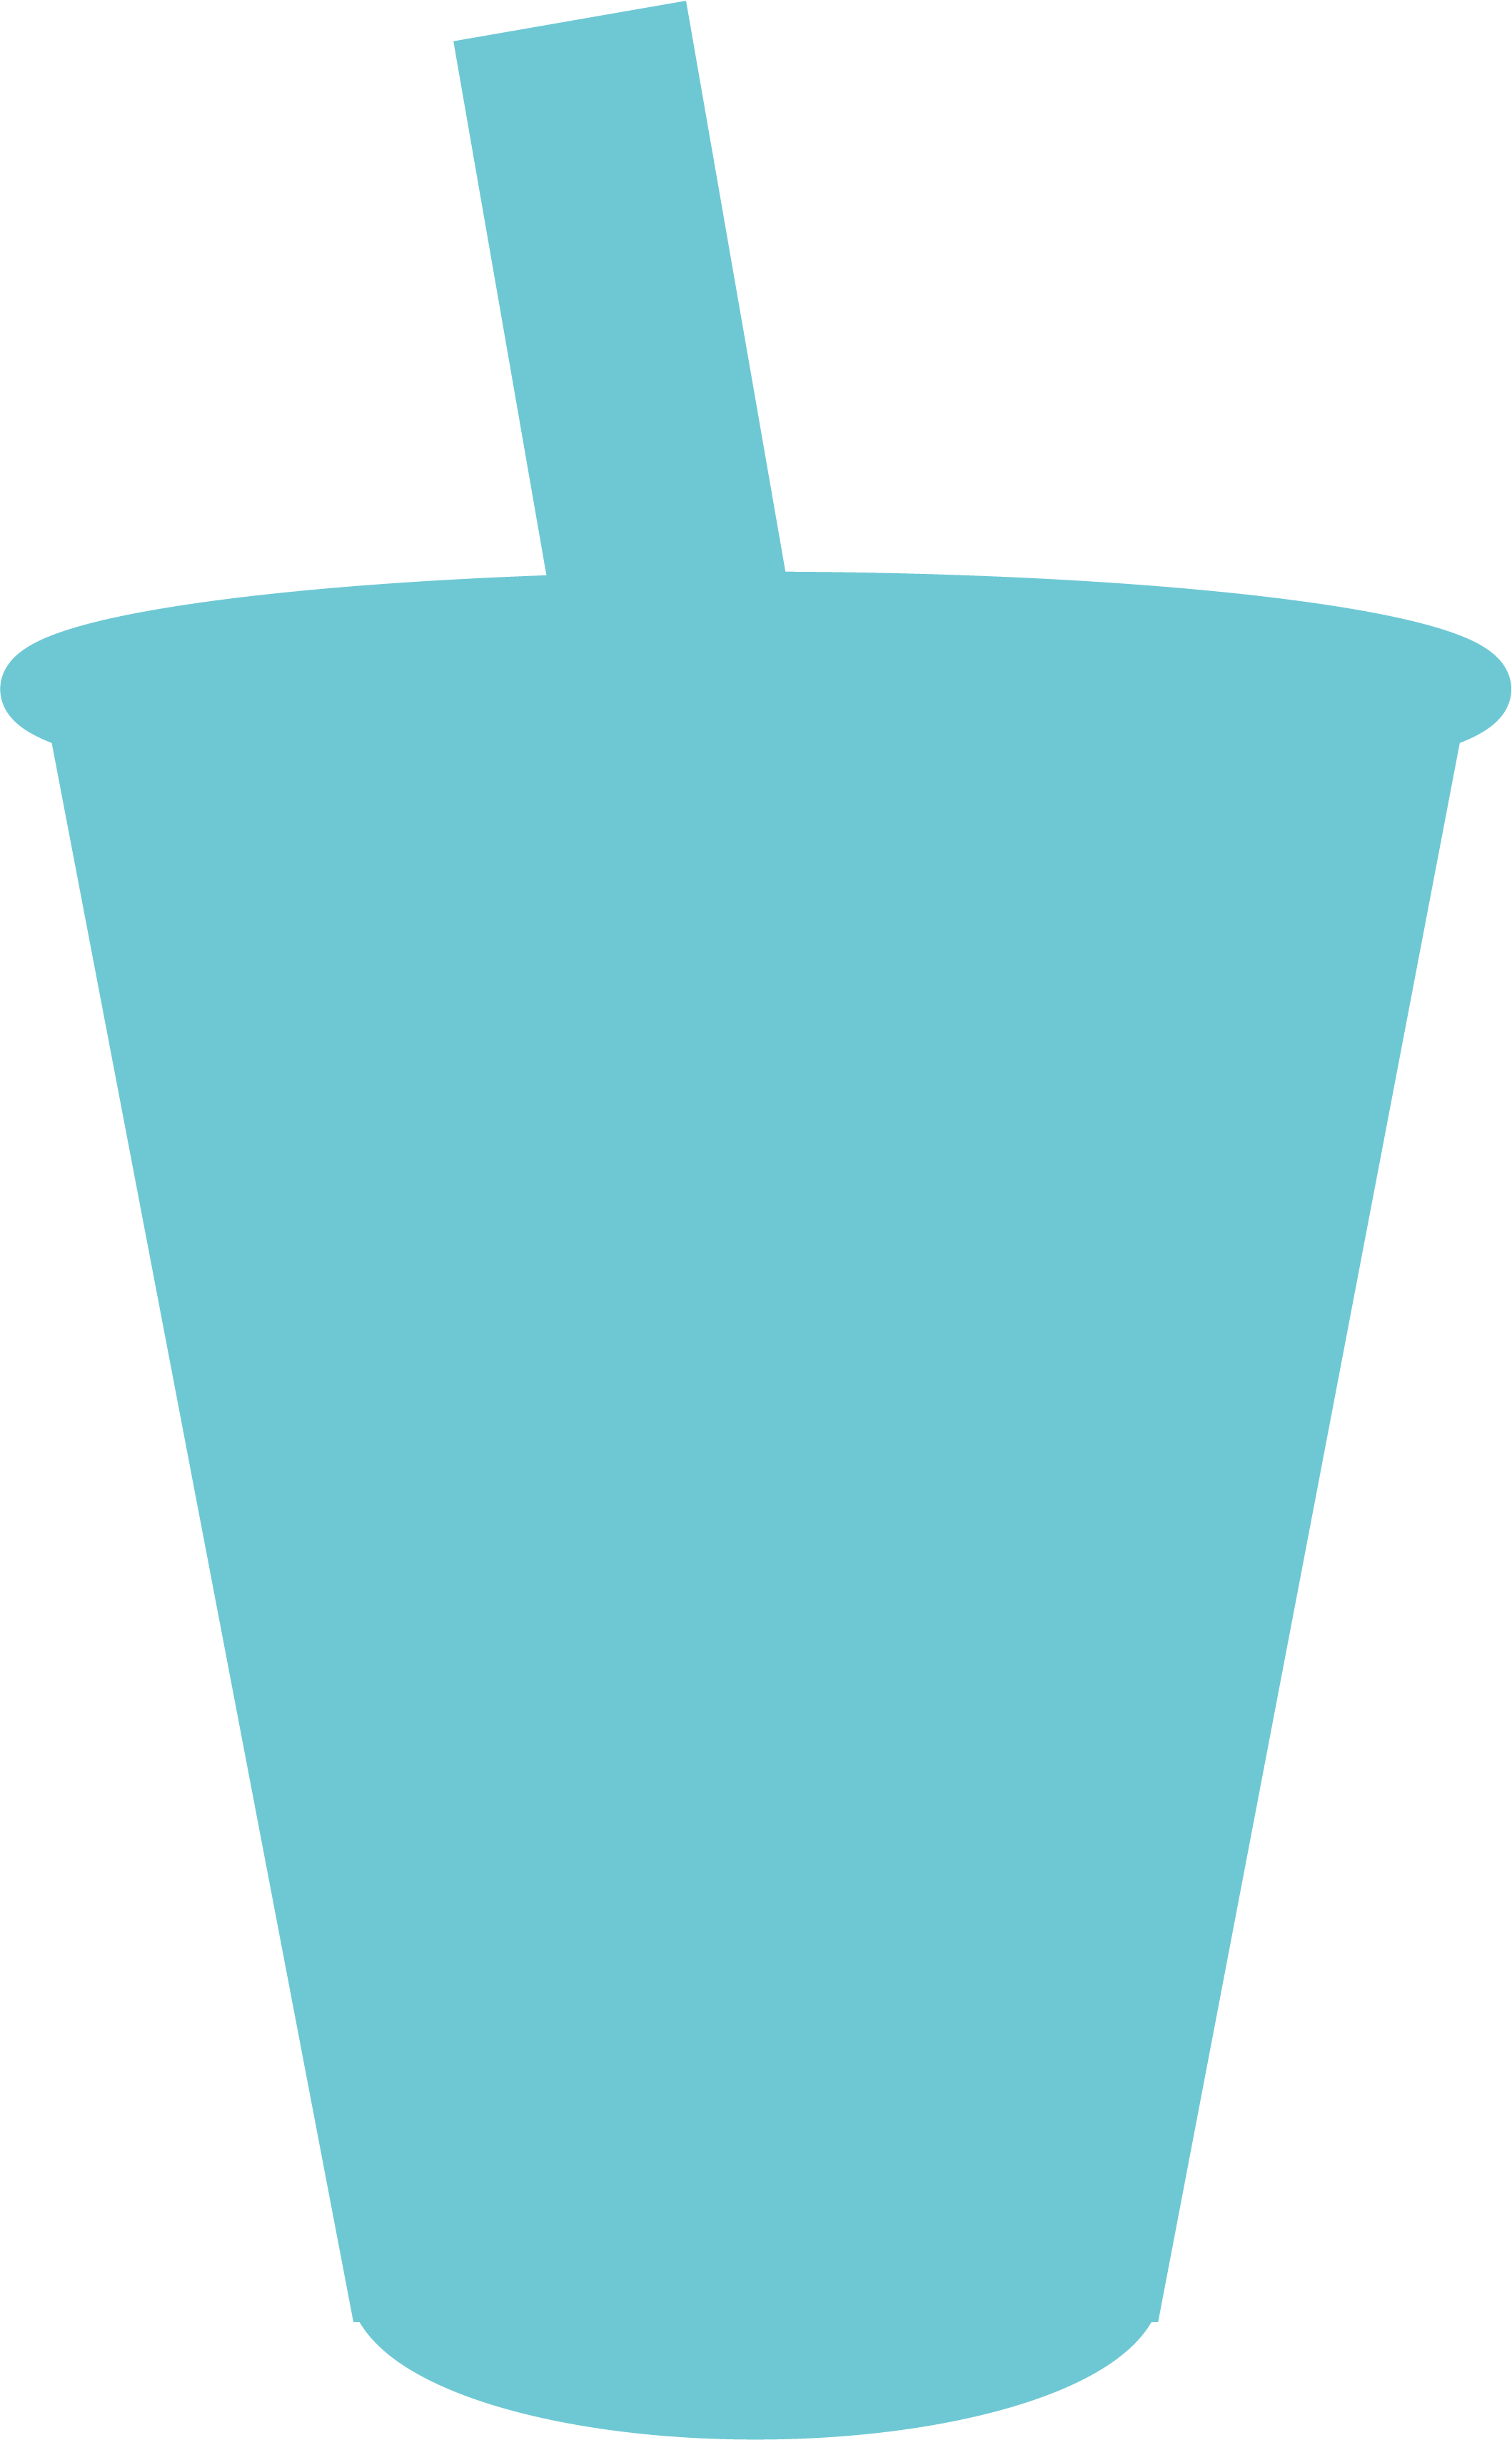 Talk Boba recipe icon